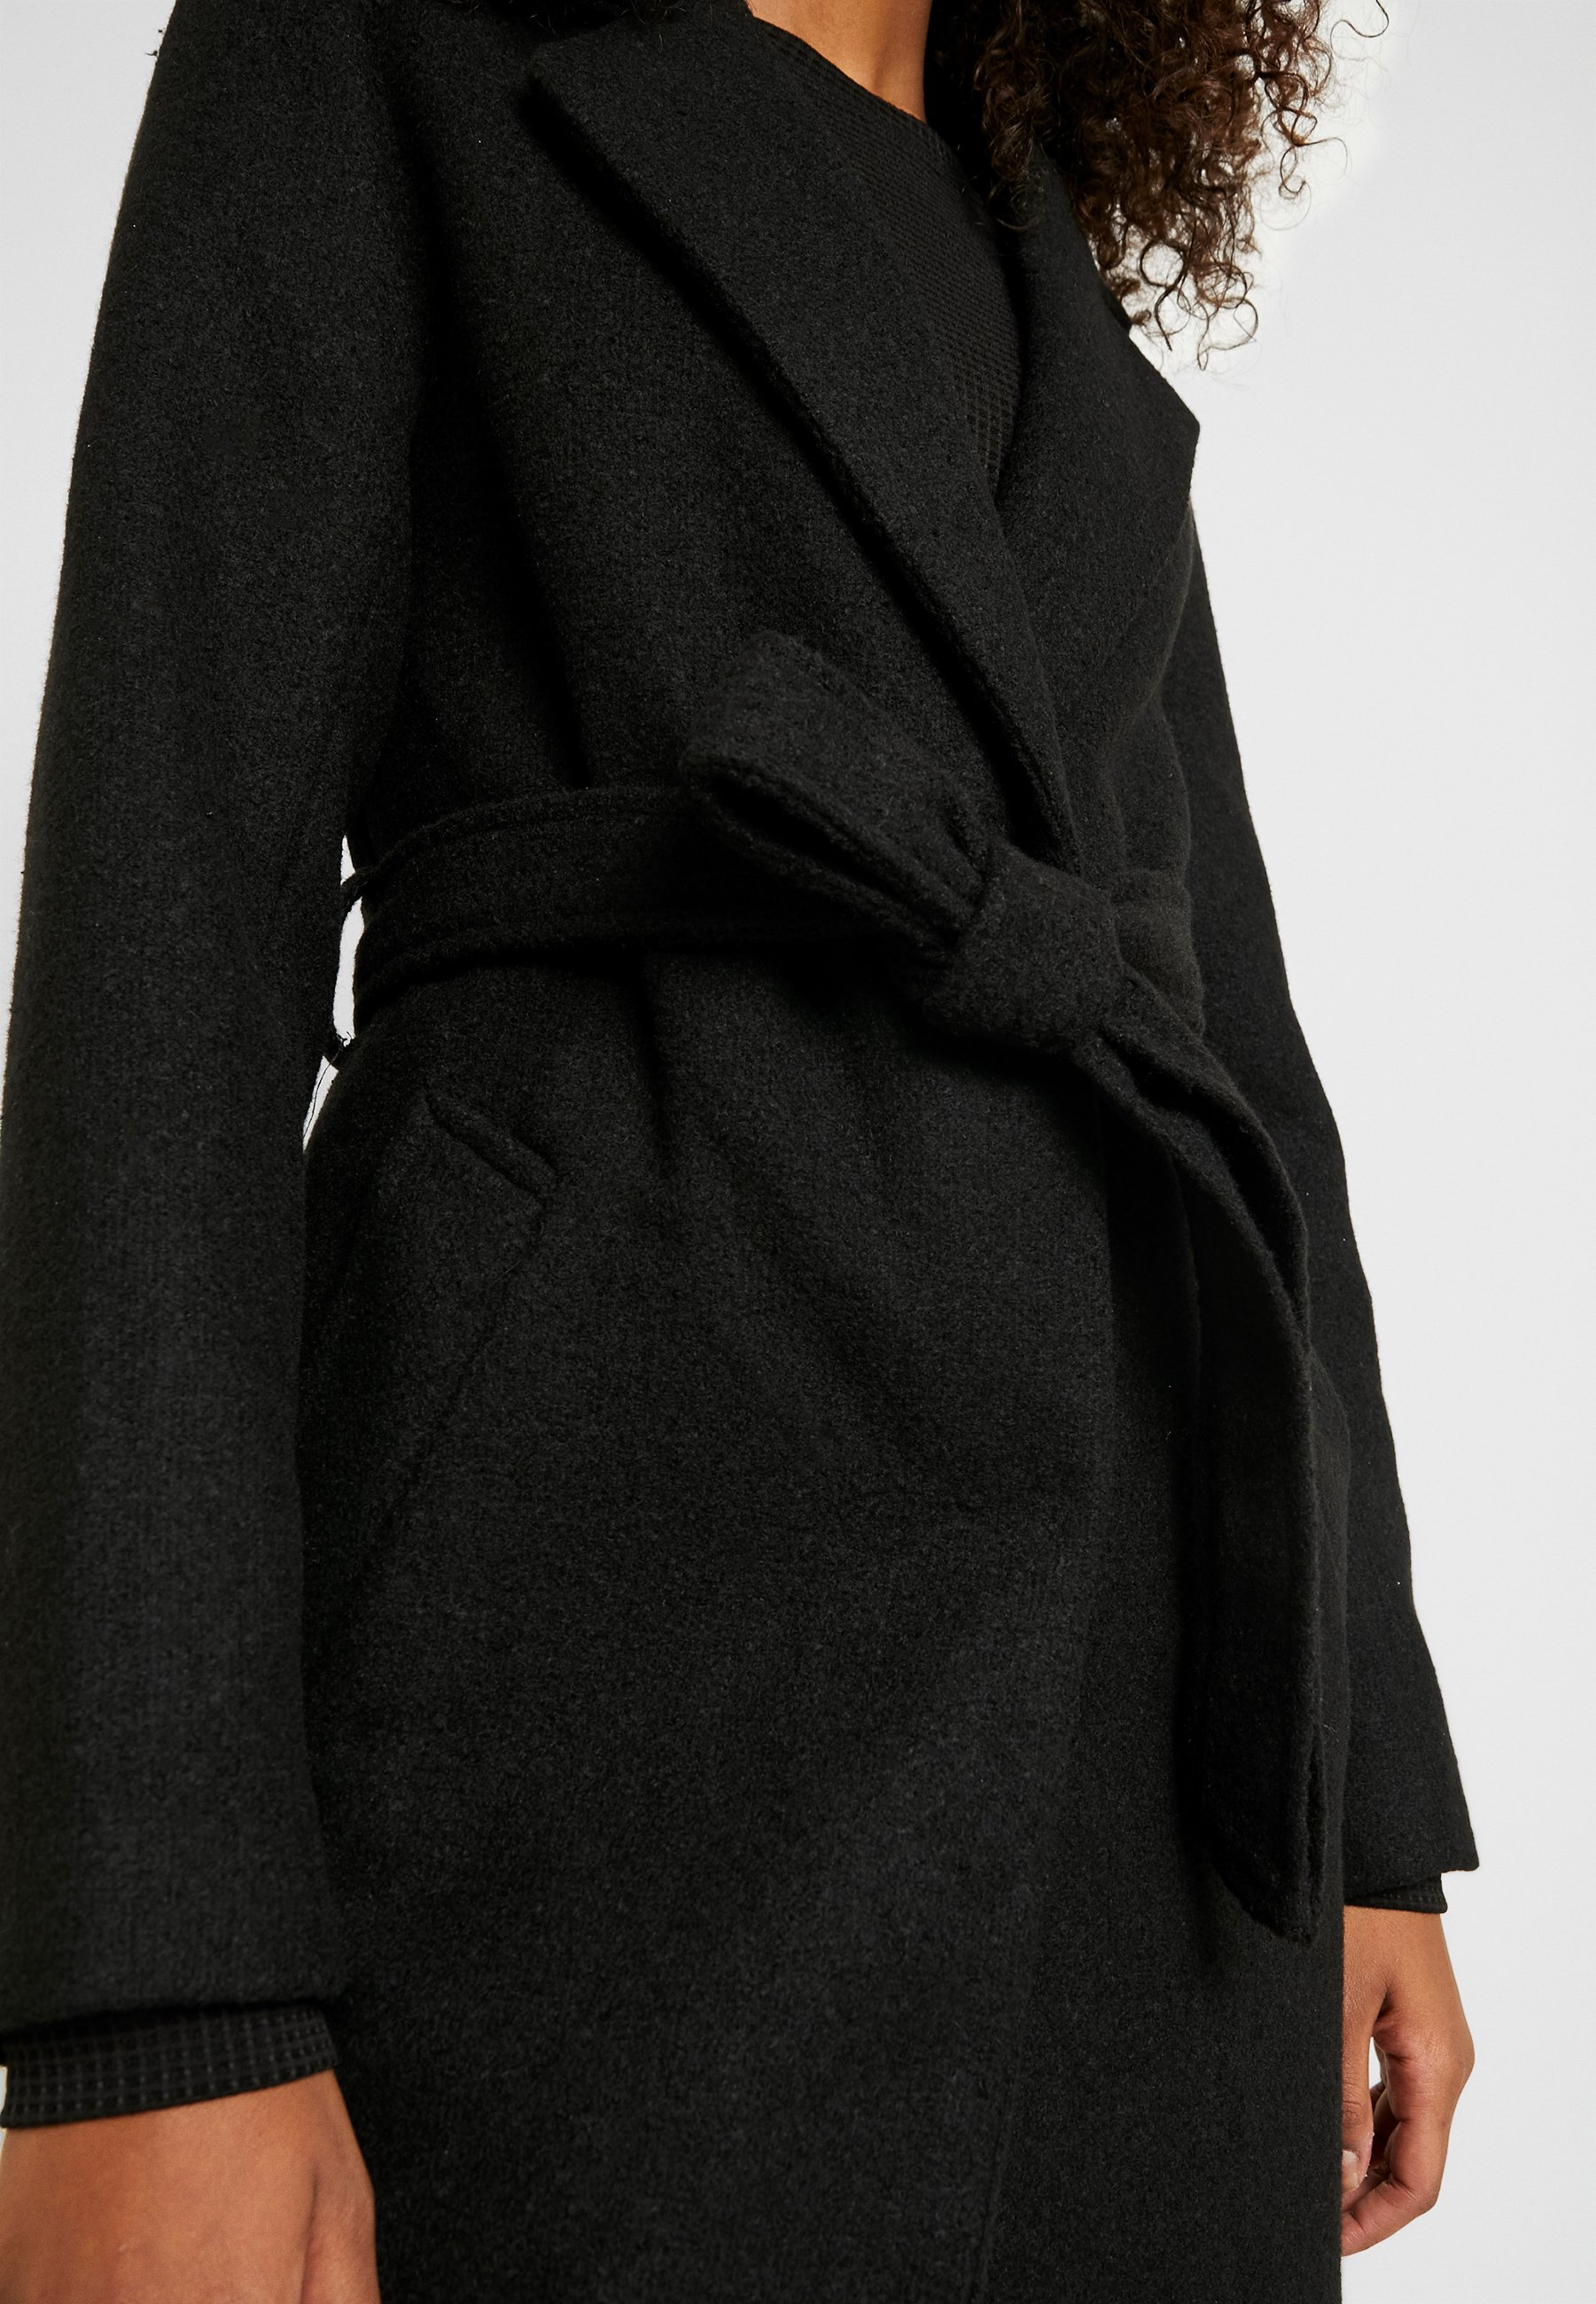 New Look Gabrielle Belted Coat - Classic Black UK